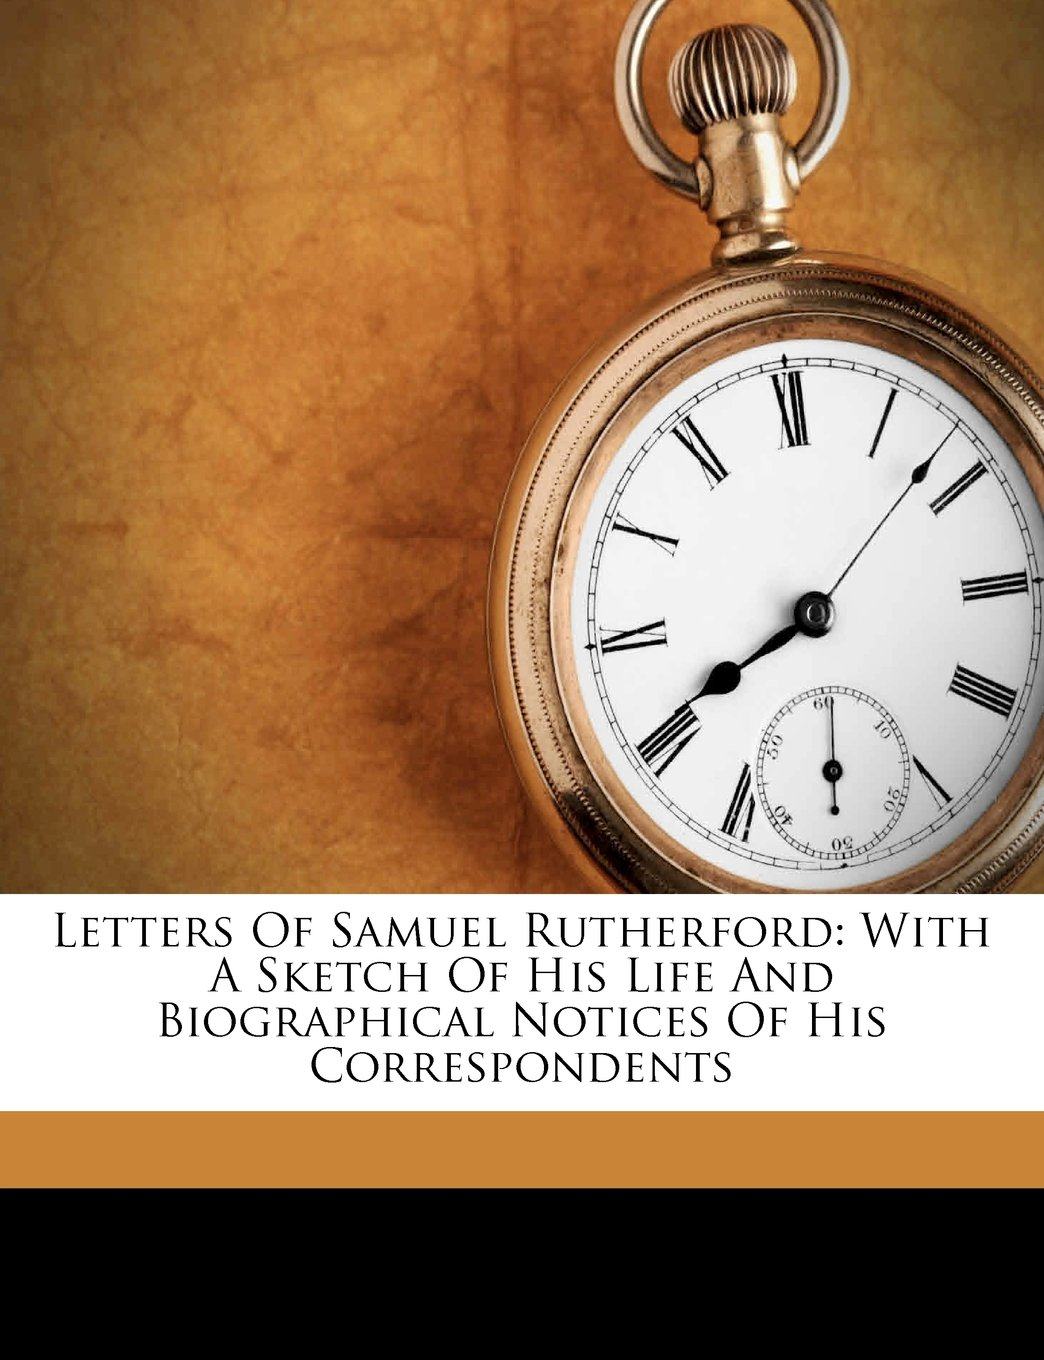 Letters Of Samuel Rutherford: With A Sketch Of His Life And Biographical Notices Of His Correspondents pdf